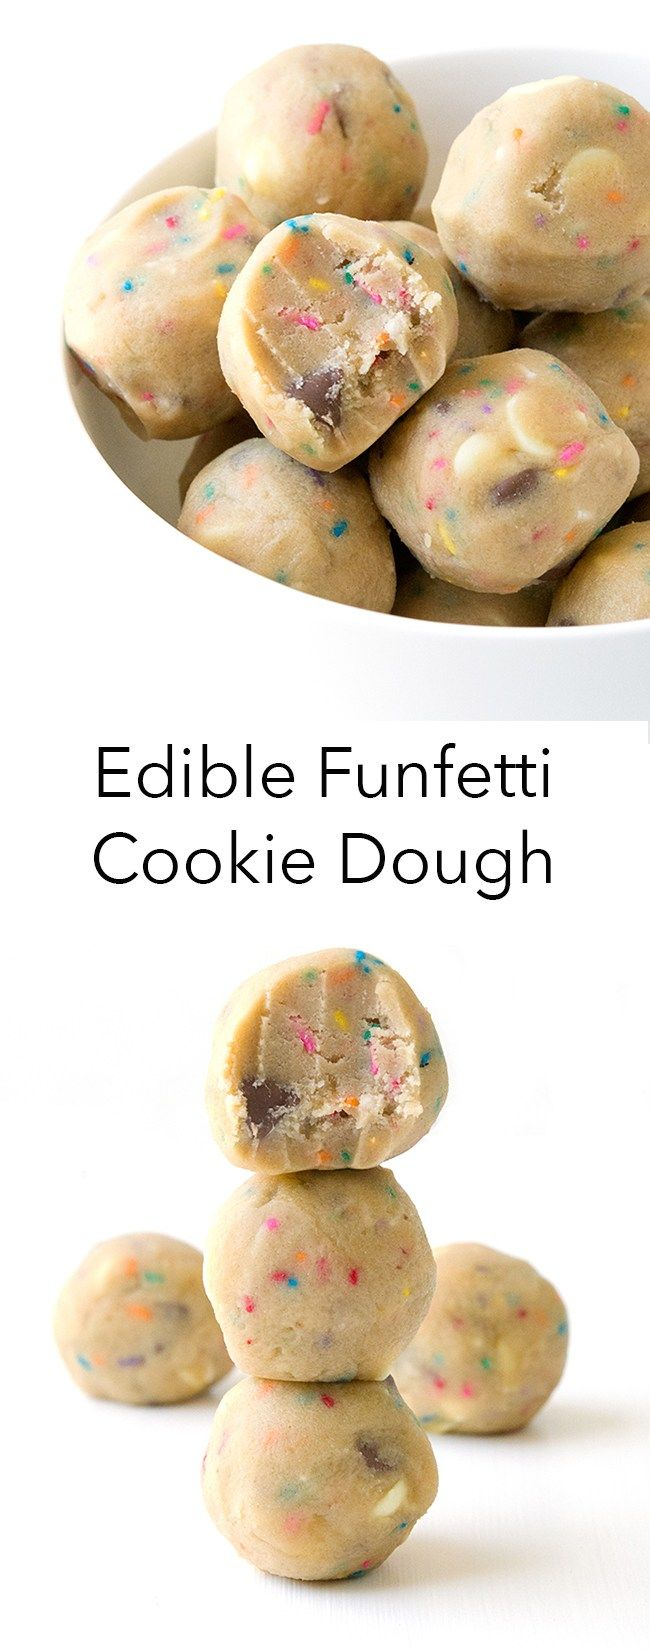 Edible Funfetti Cookie Dough - Sweetest Menu